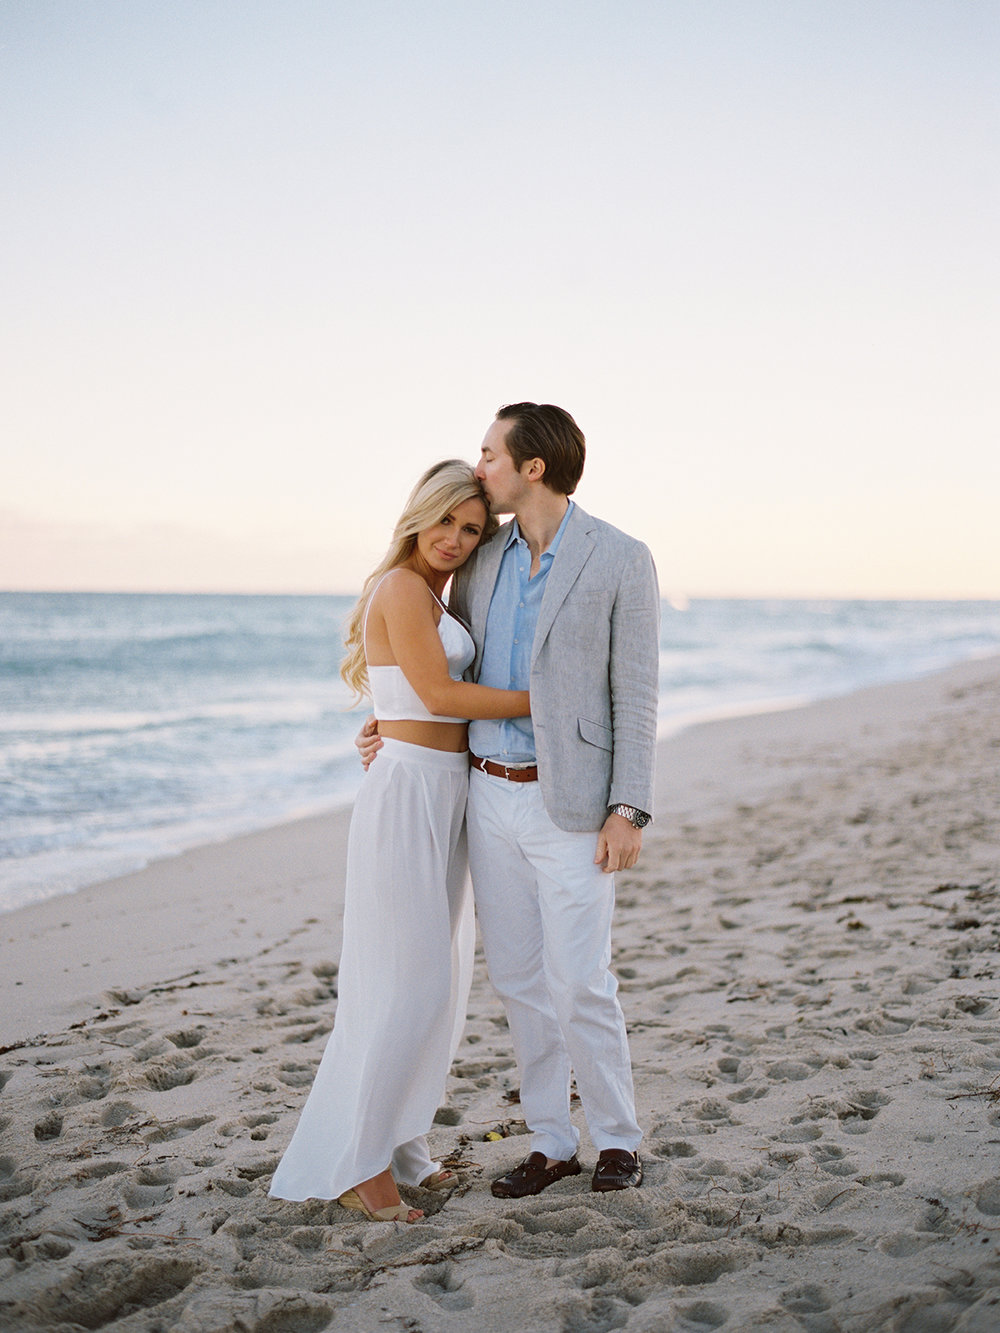 Jameson-Kira-Engagement-Film-Photographer-Miami-102.jpg